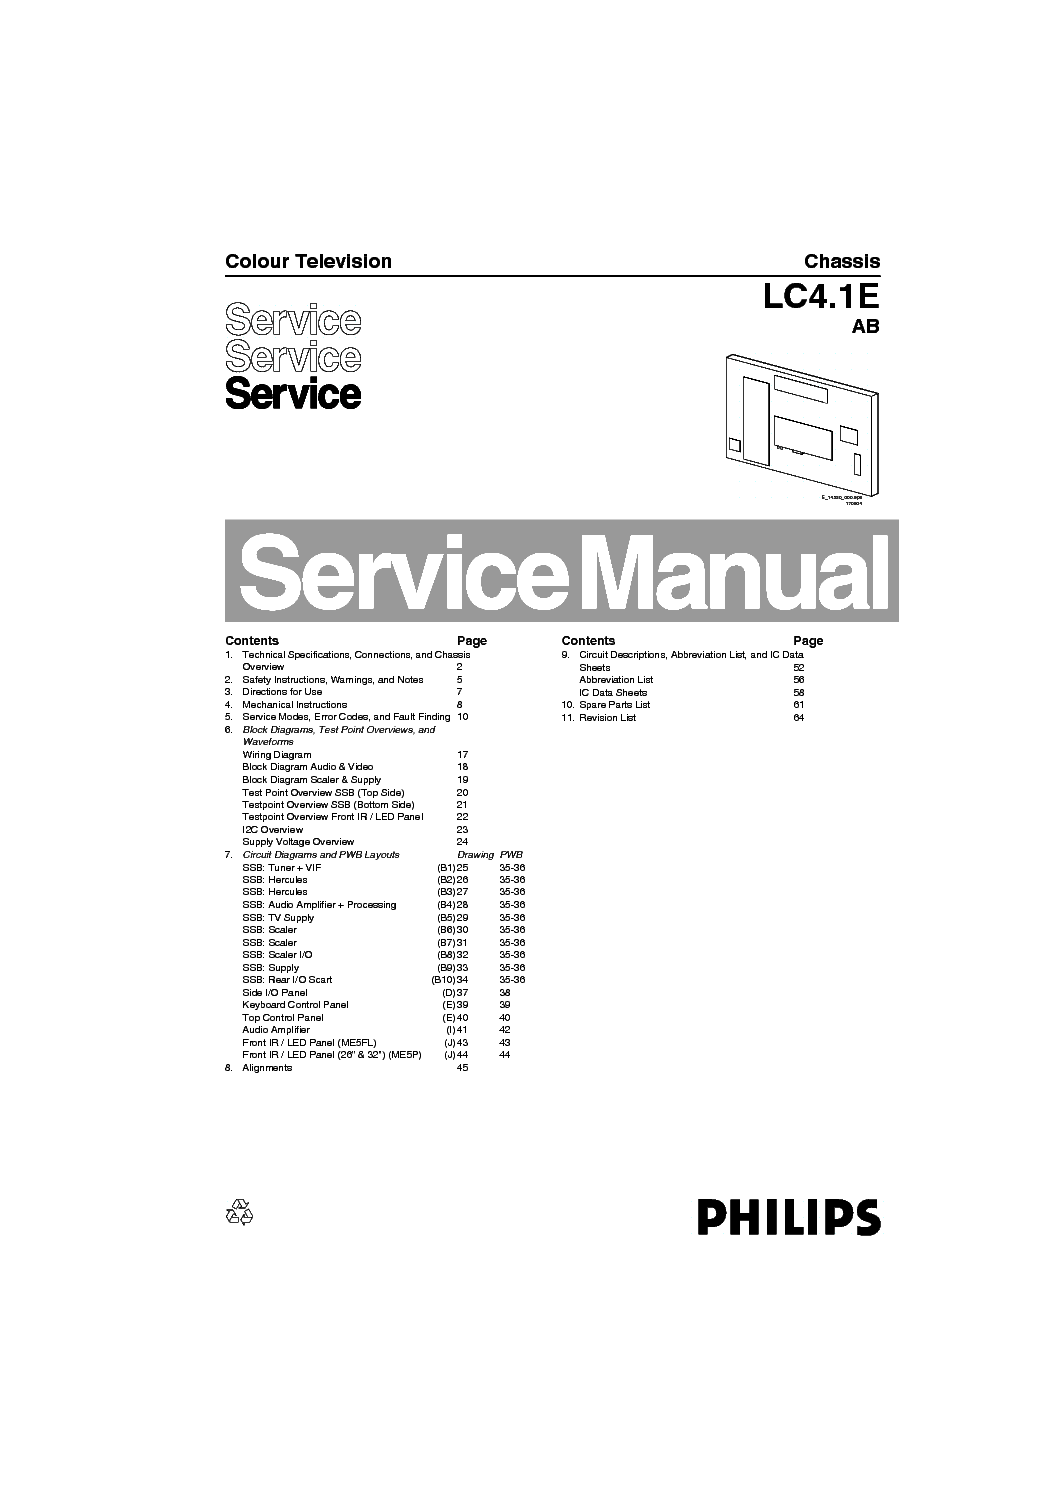 PHILIPS 15PF4110 CHASSIS LC4.1E AB SM Service Manual